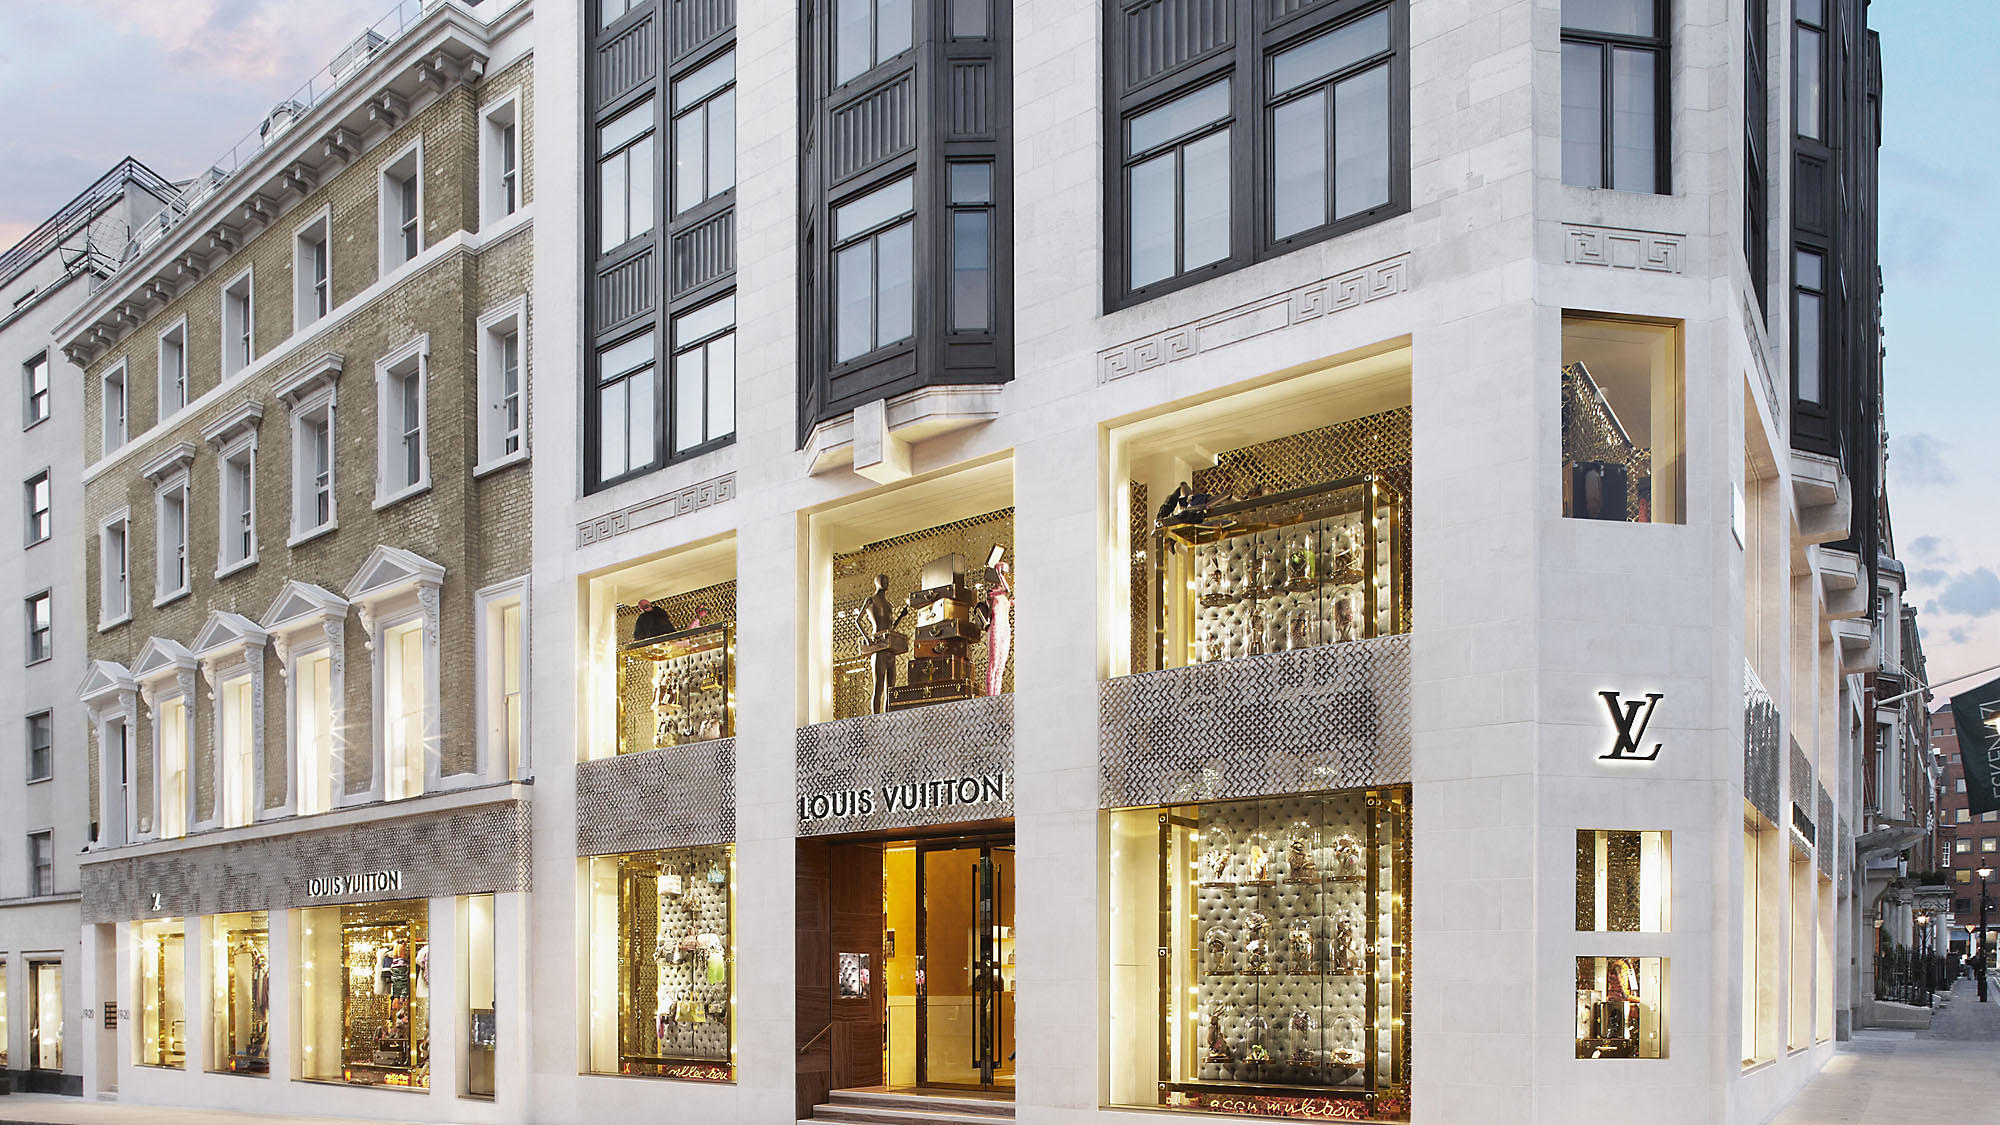 Louis Vuitton on New Bond Street, London